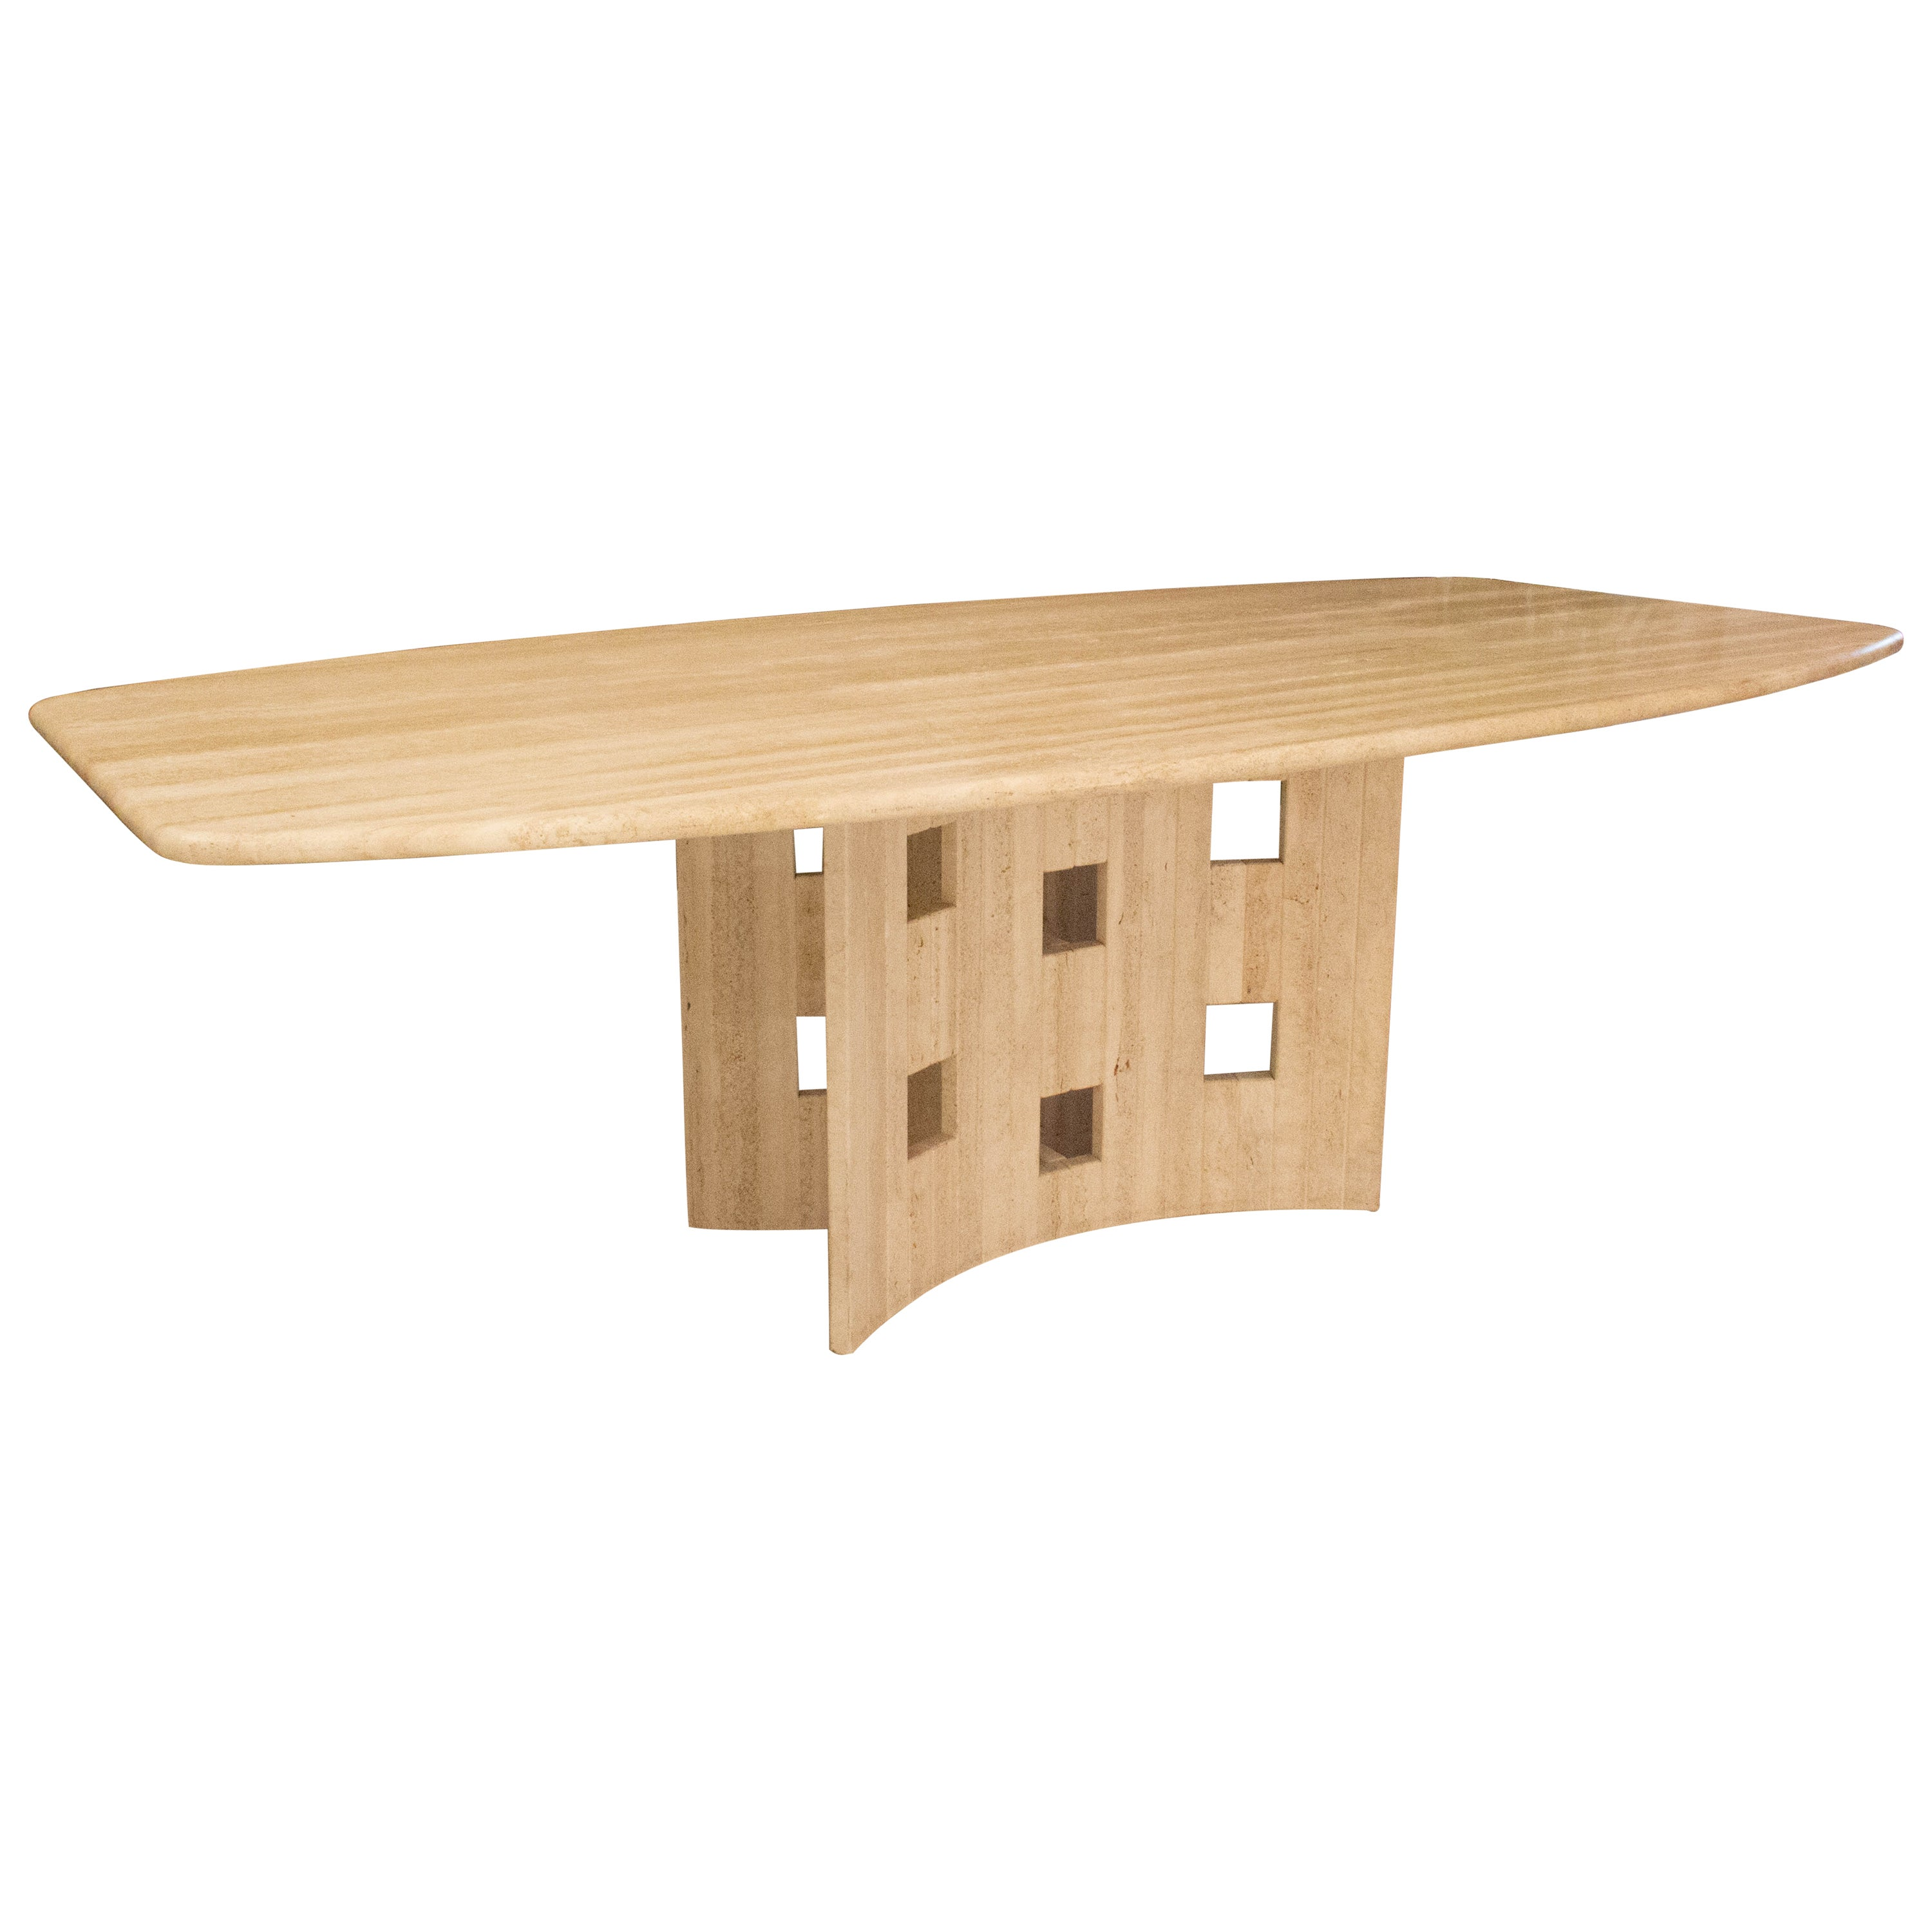 French Travertine Dining Table or Conference Table, circa 1980